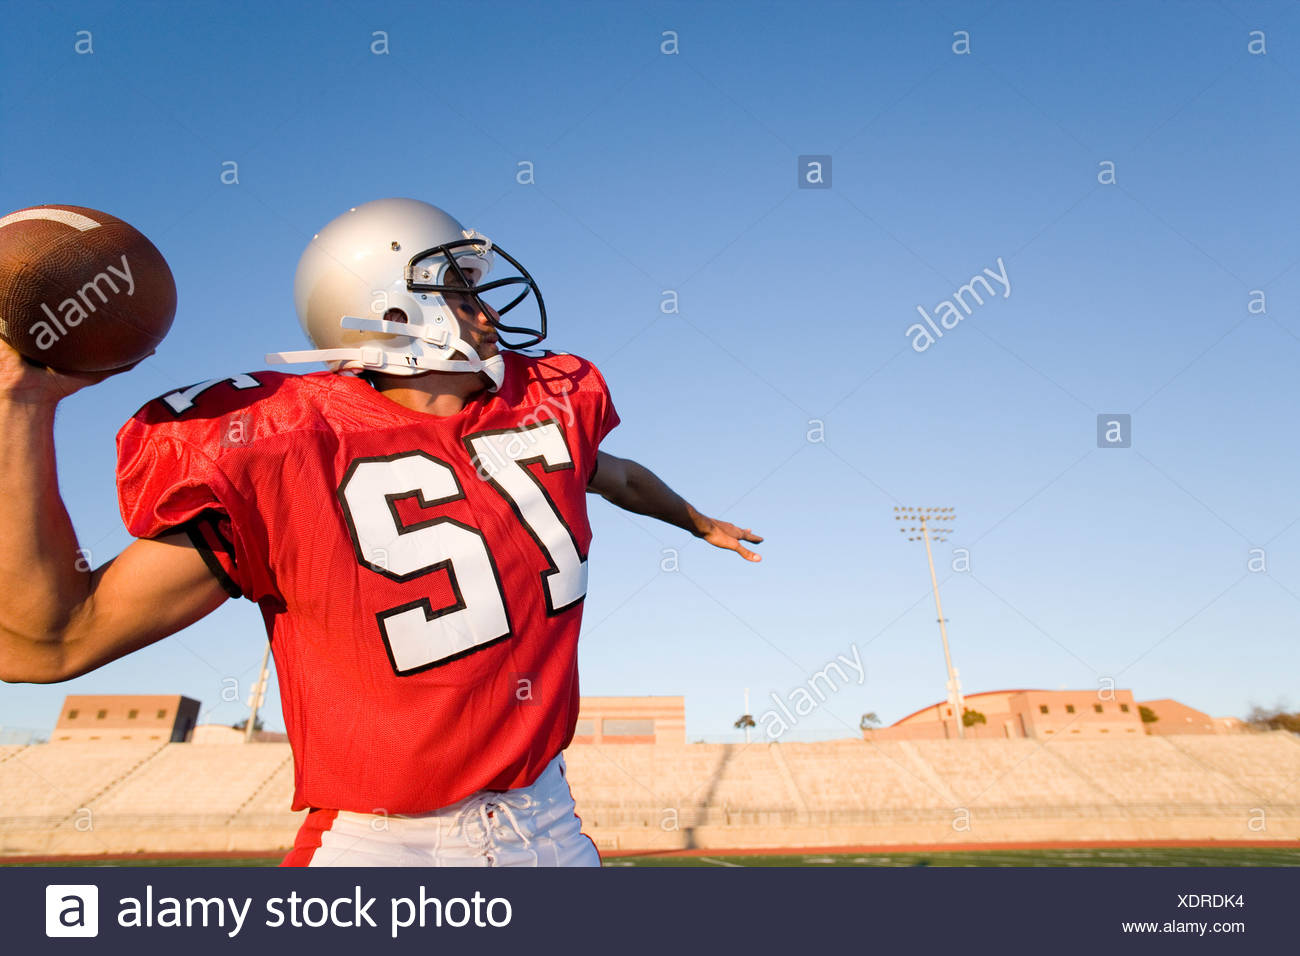 American football quarterback, in red strip, about to throw ball during competitive game, profile - Stock Image